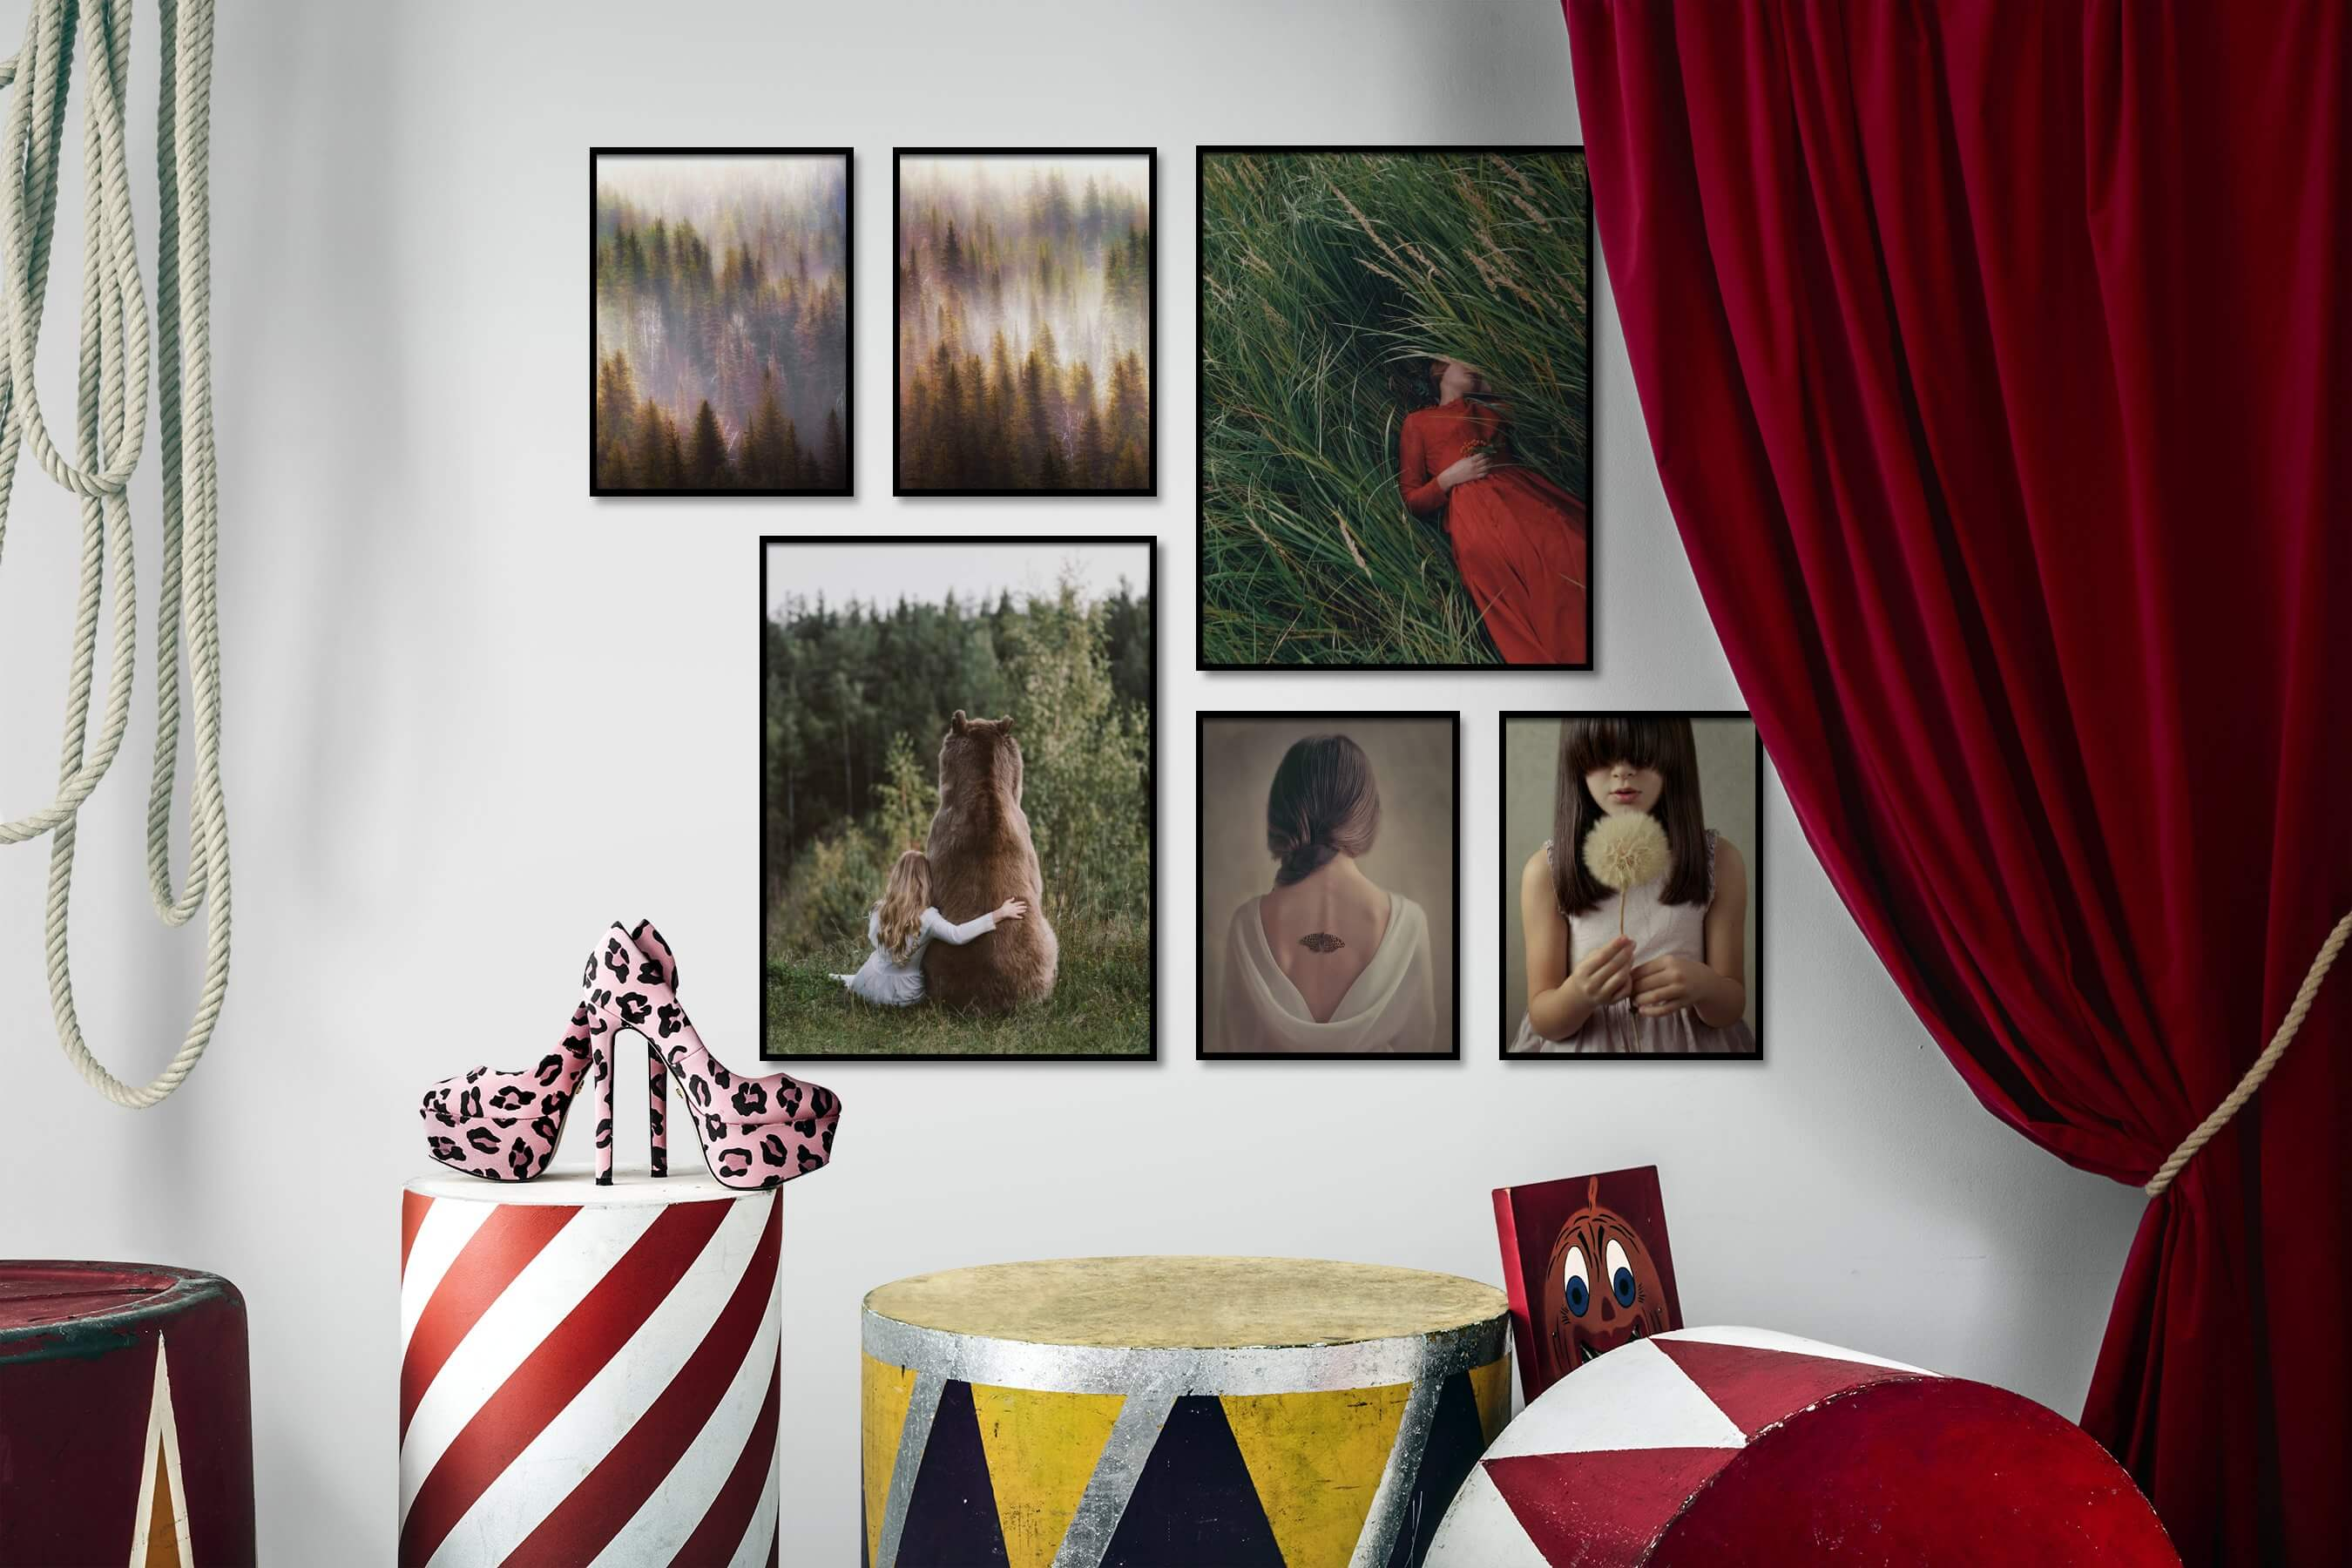 Gallery wall idea with six framed pictures arranged on a wall depicting For the Moderate, Nature, Mindfulness, Animals, Artsy, Country Life, and Fashion & Beauty